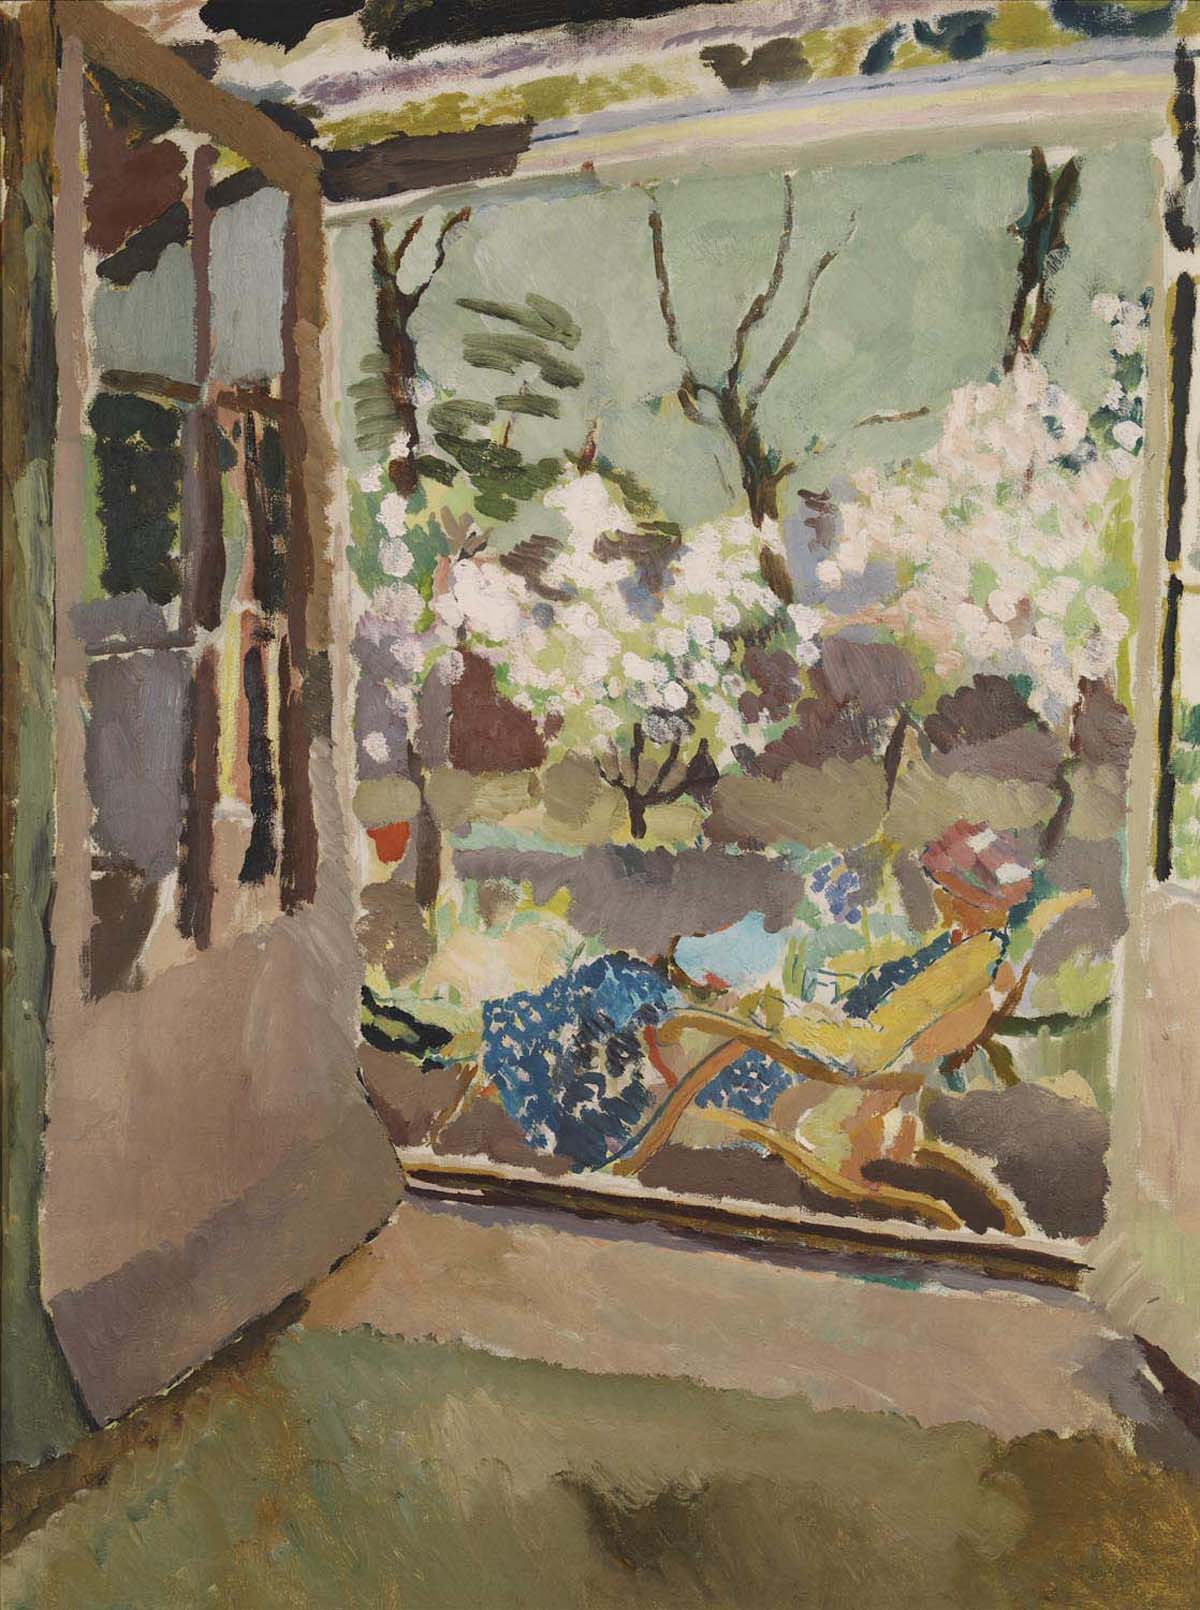 painting of a window view looking out towards tress in blossom